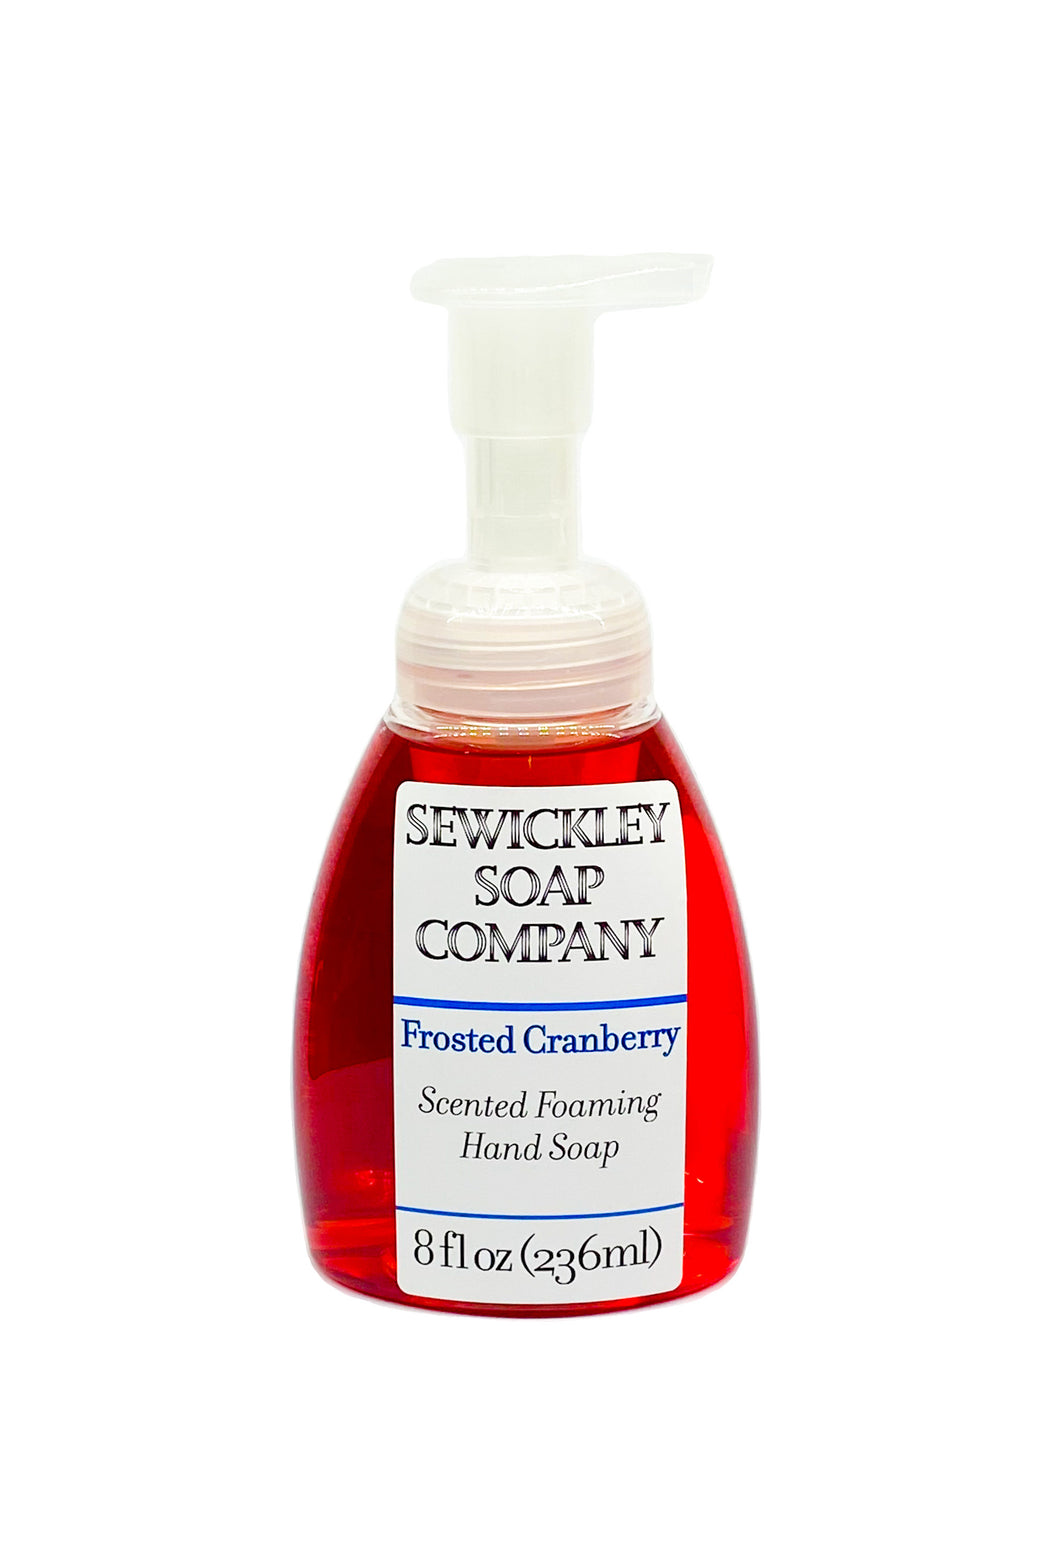 Frosted Cranberry Scented Foaming Hand Soap